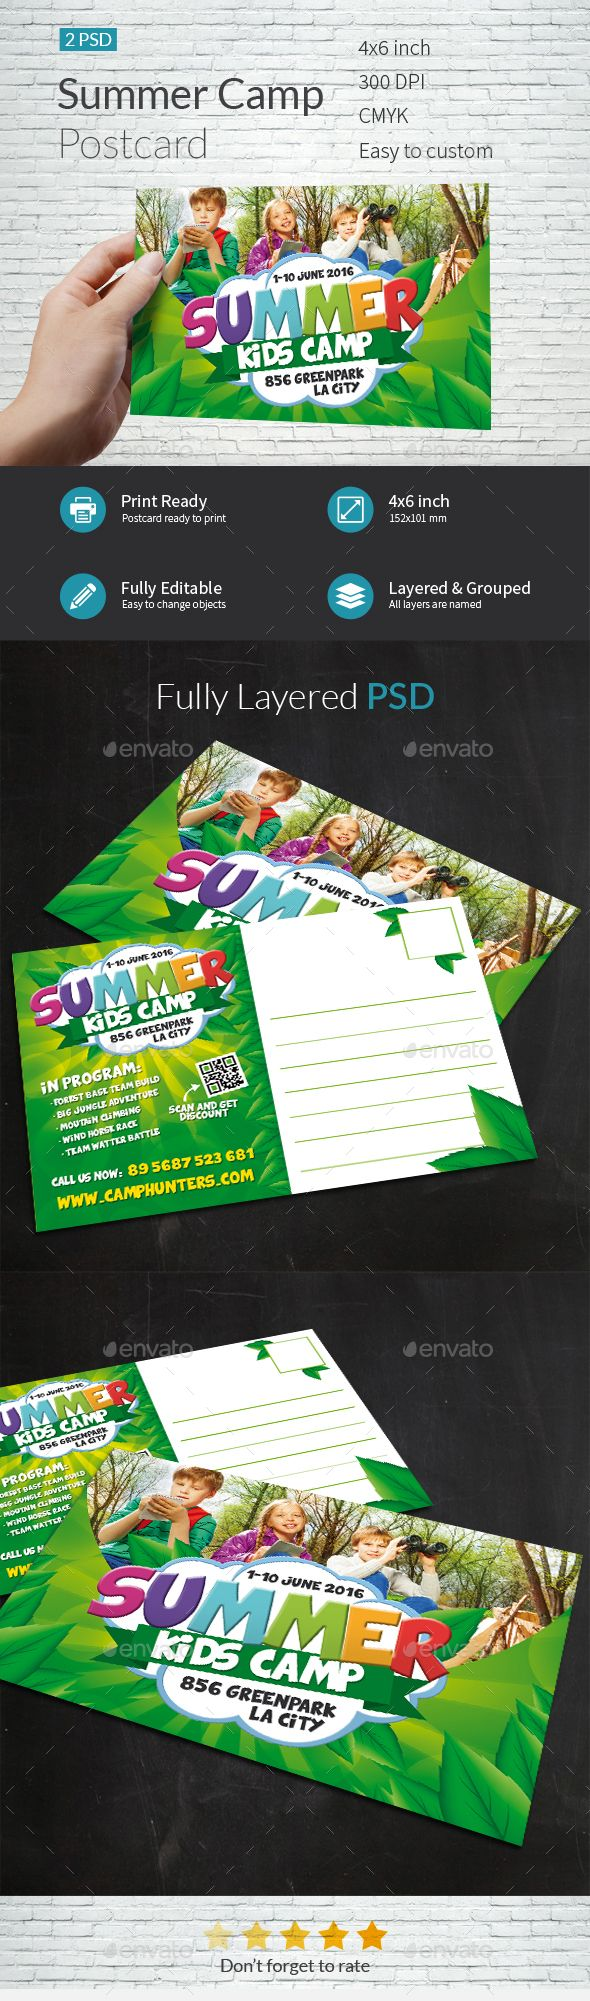 Summer Camp Postcard Template